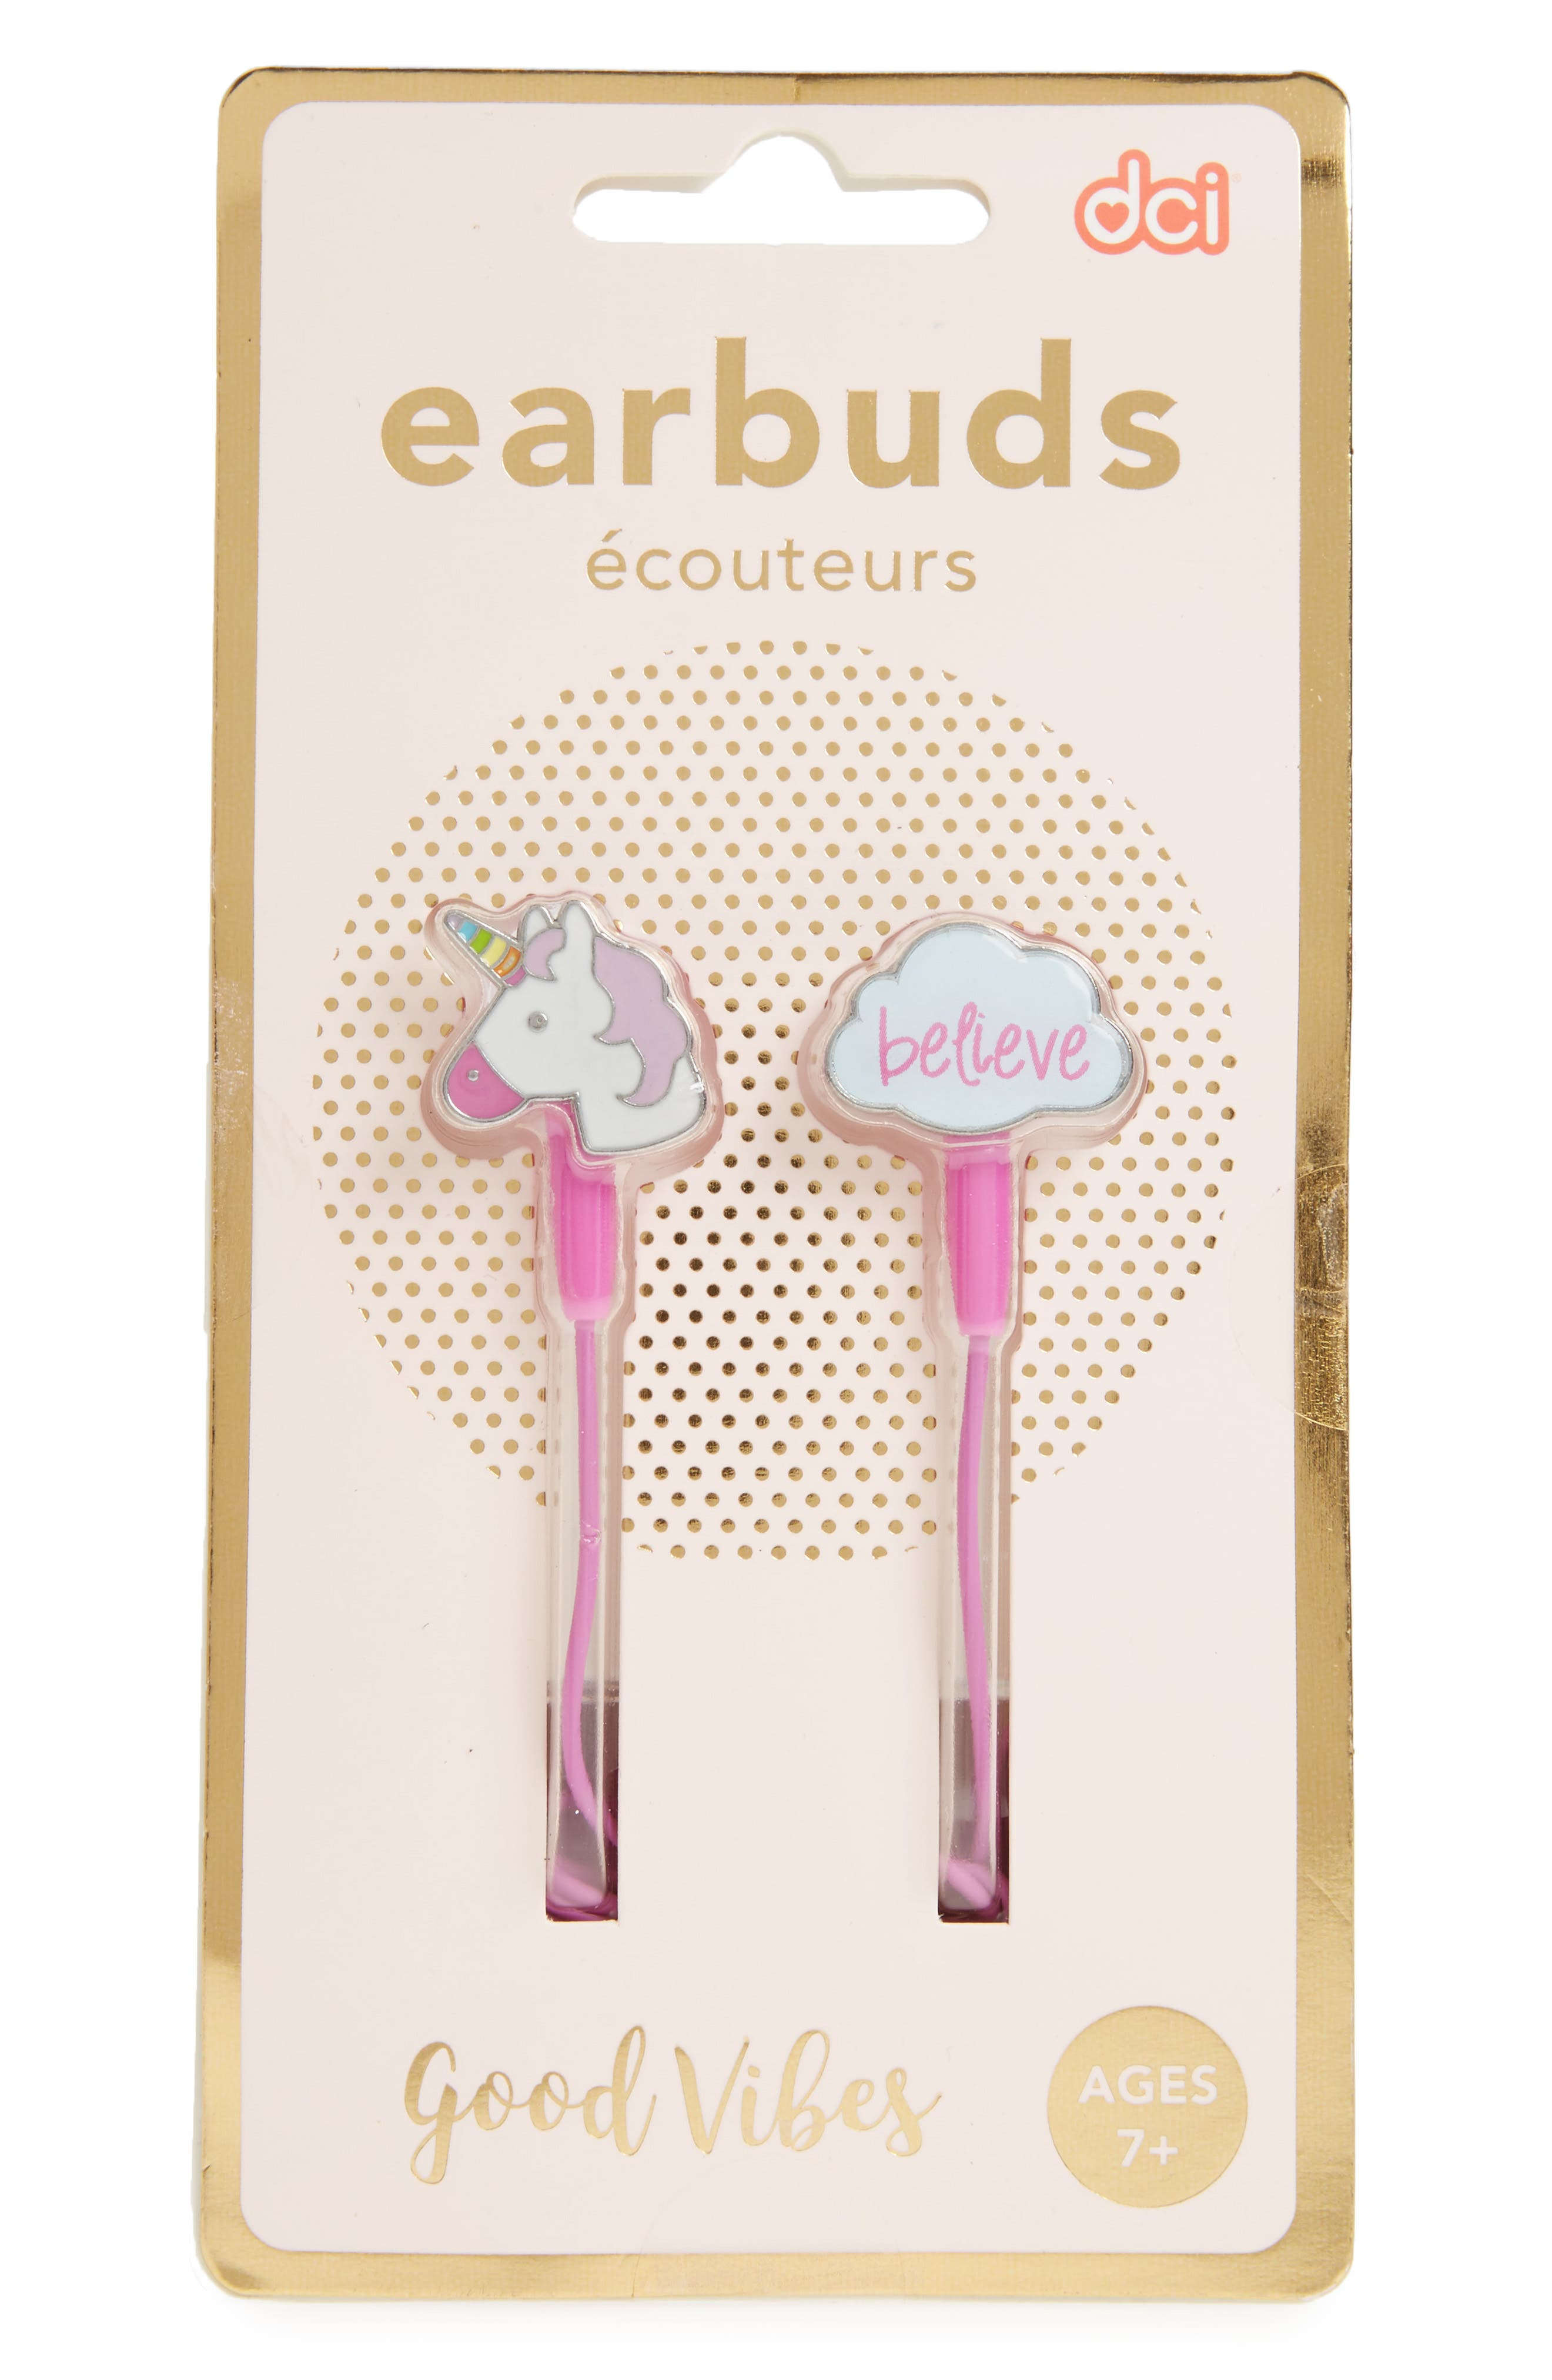 Good Vibes Earbuds,                             Main thumbnail 1, color,                             100